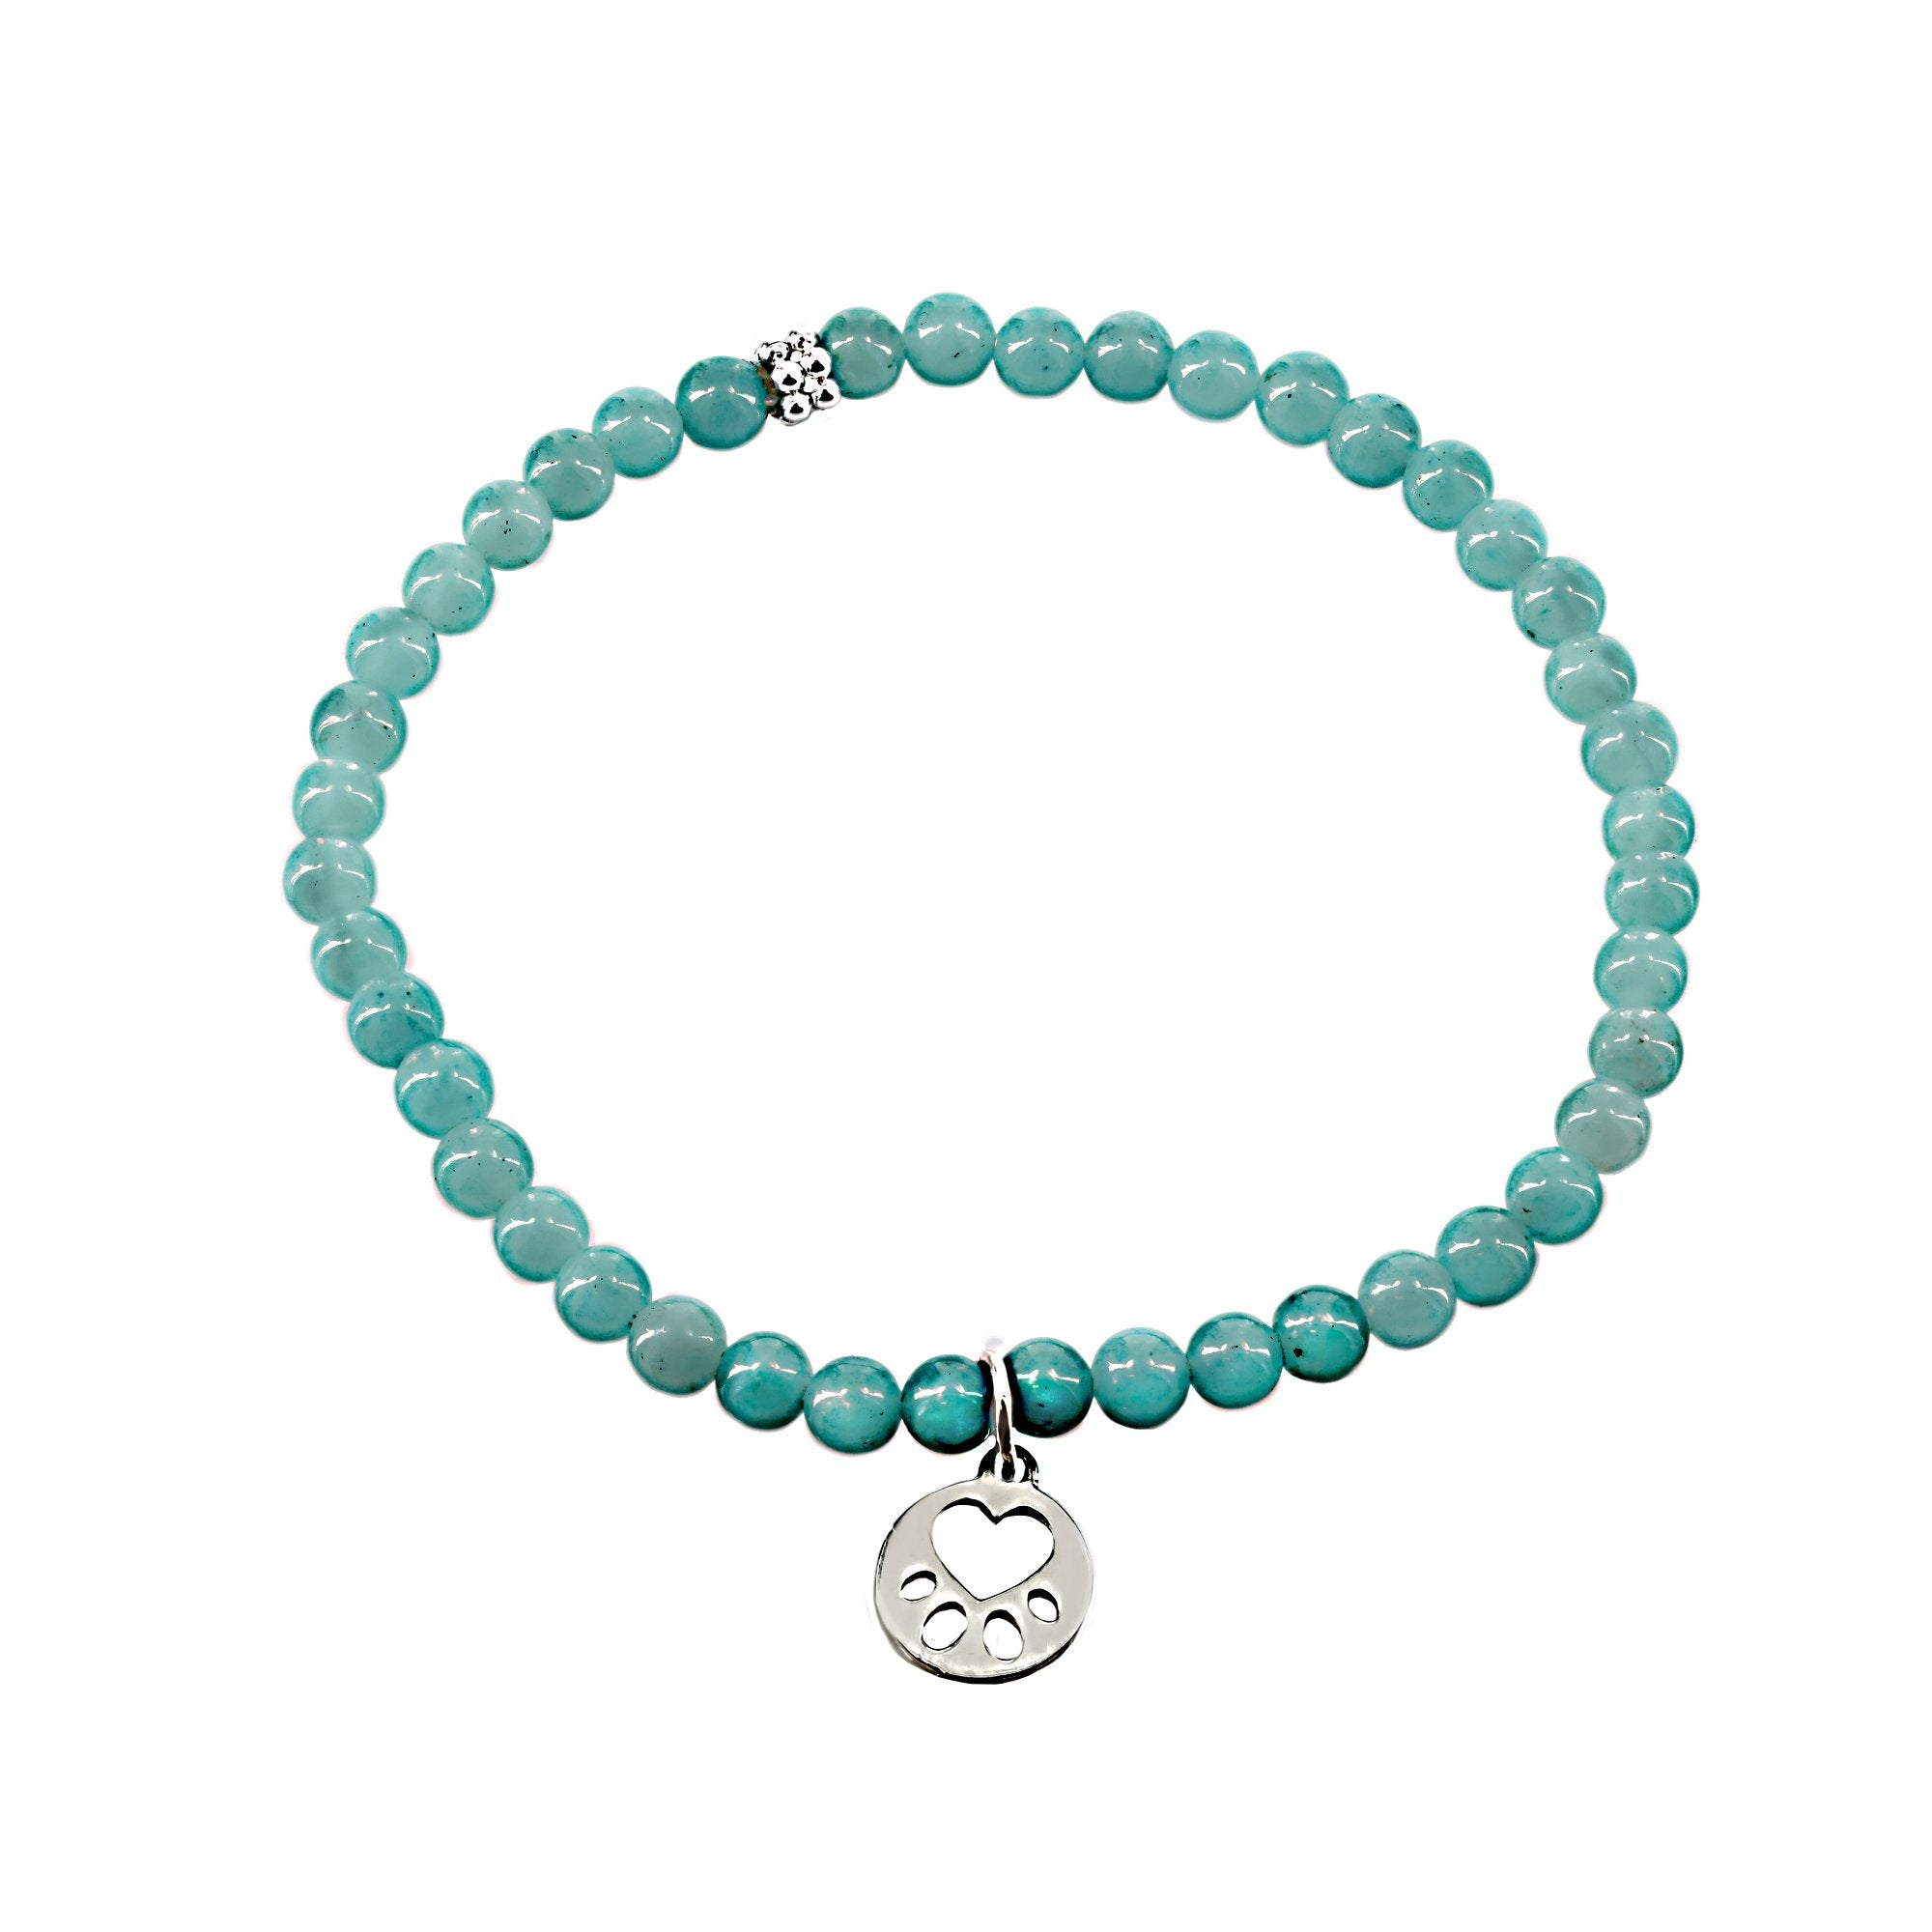 Our Cause for Paws Sterling Silver Mini Paw Amazonite Bead Bracelet